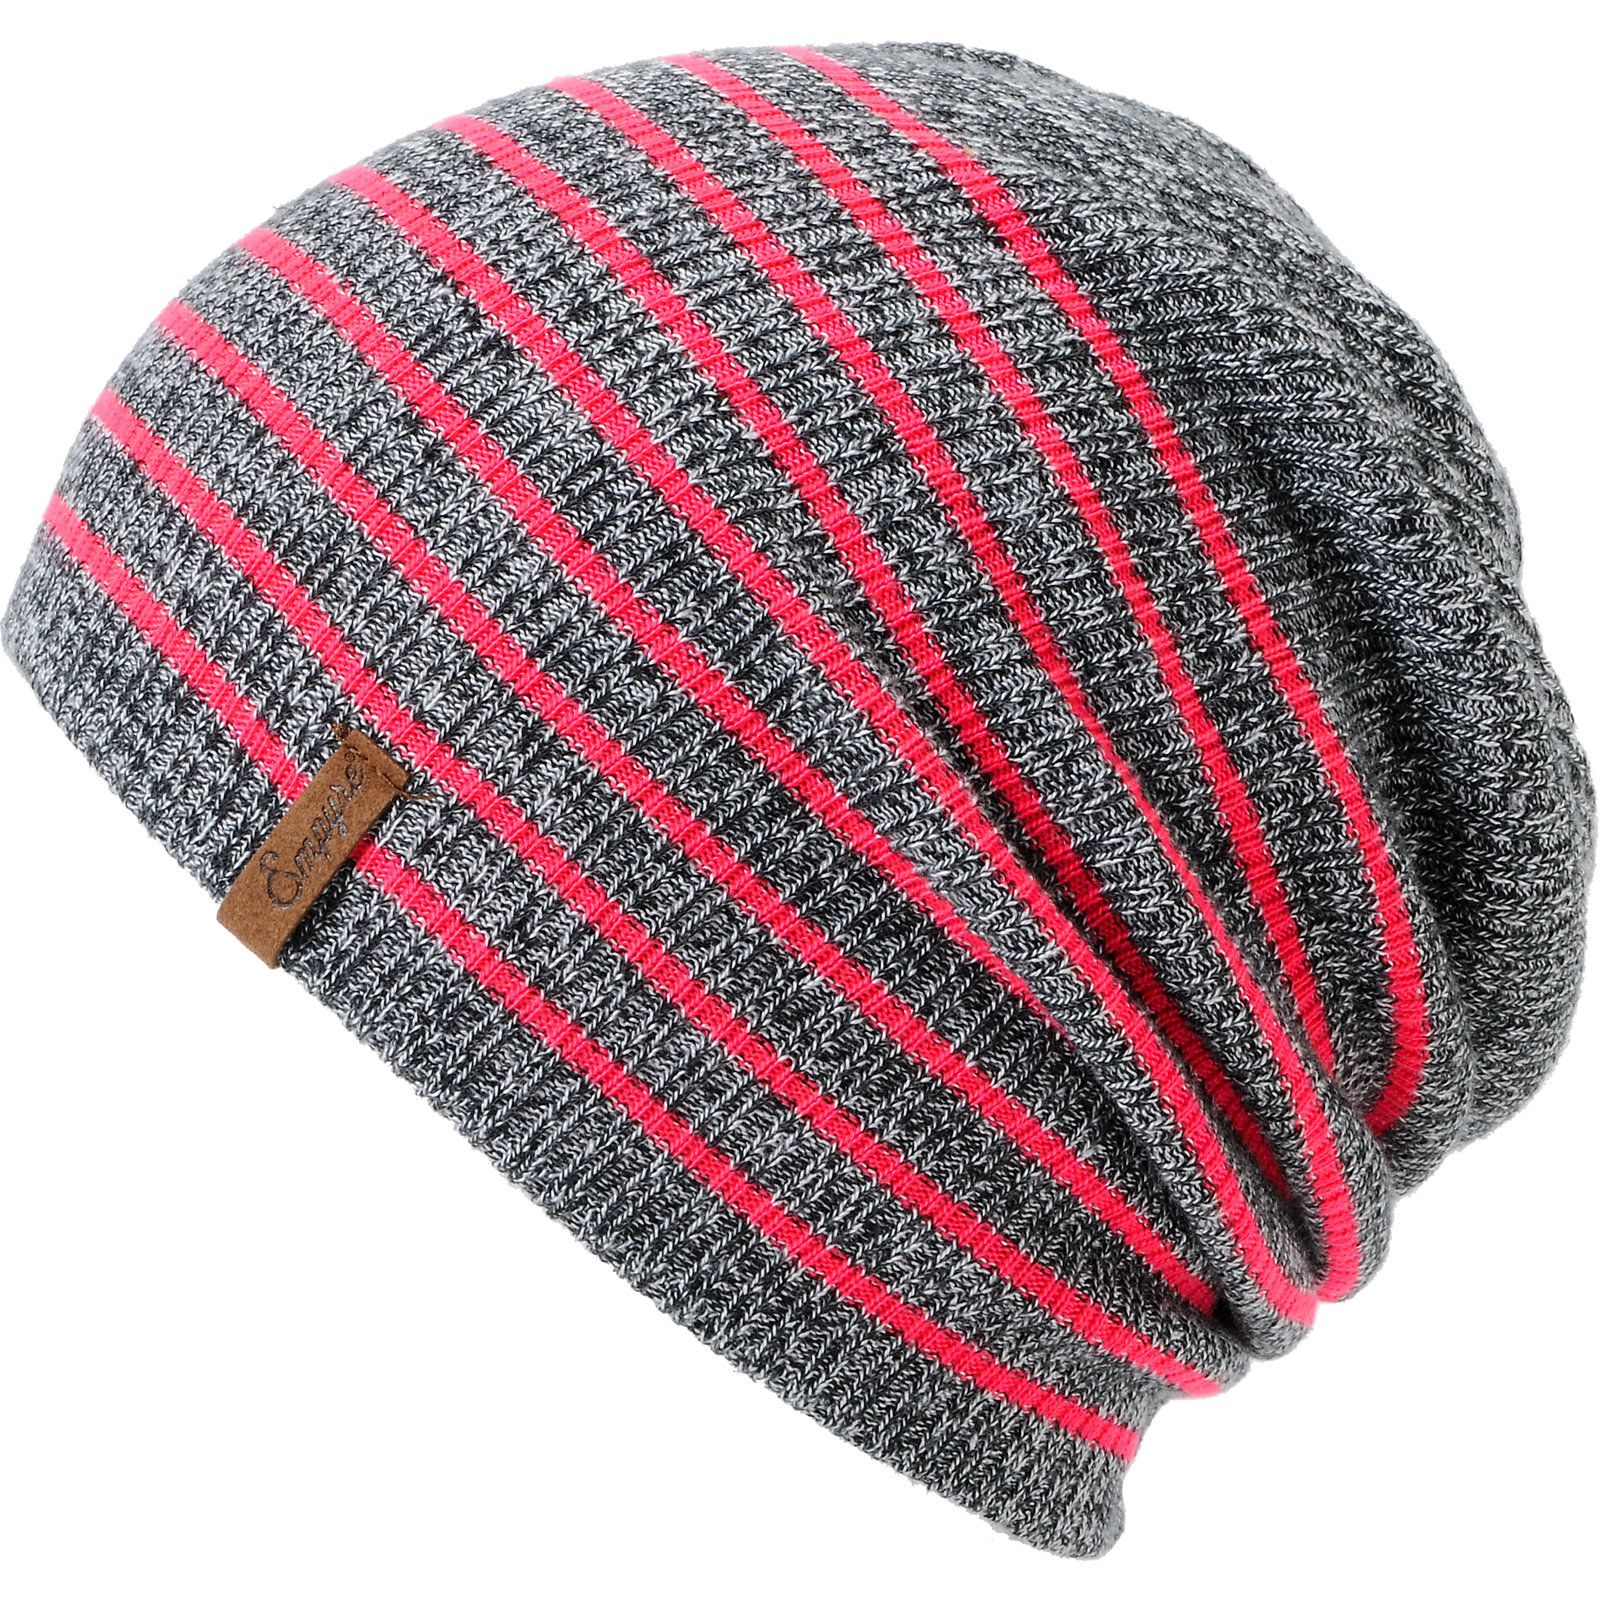 8a243a2fc6b grey and pink stripes. i think i just died. so cute. from Zumiez ...